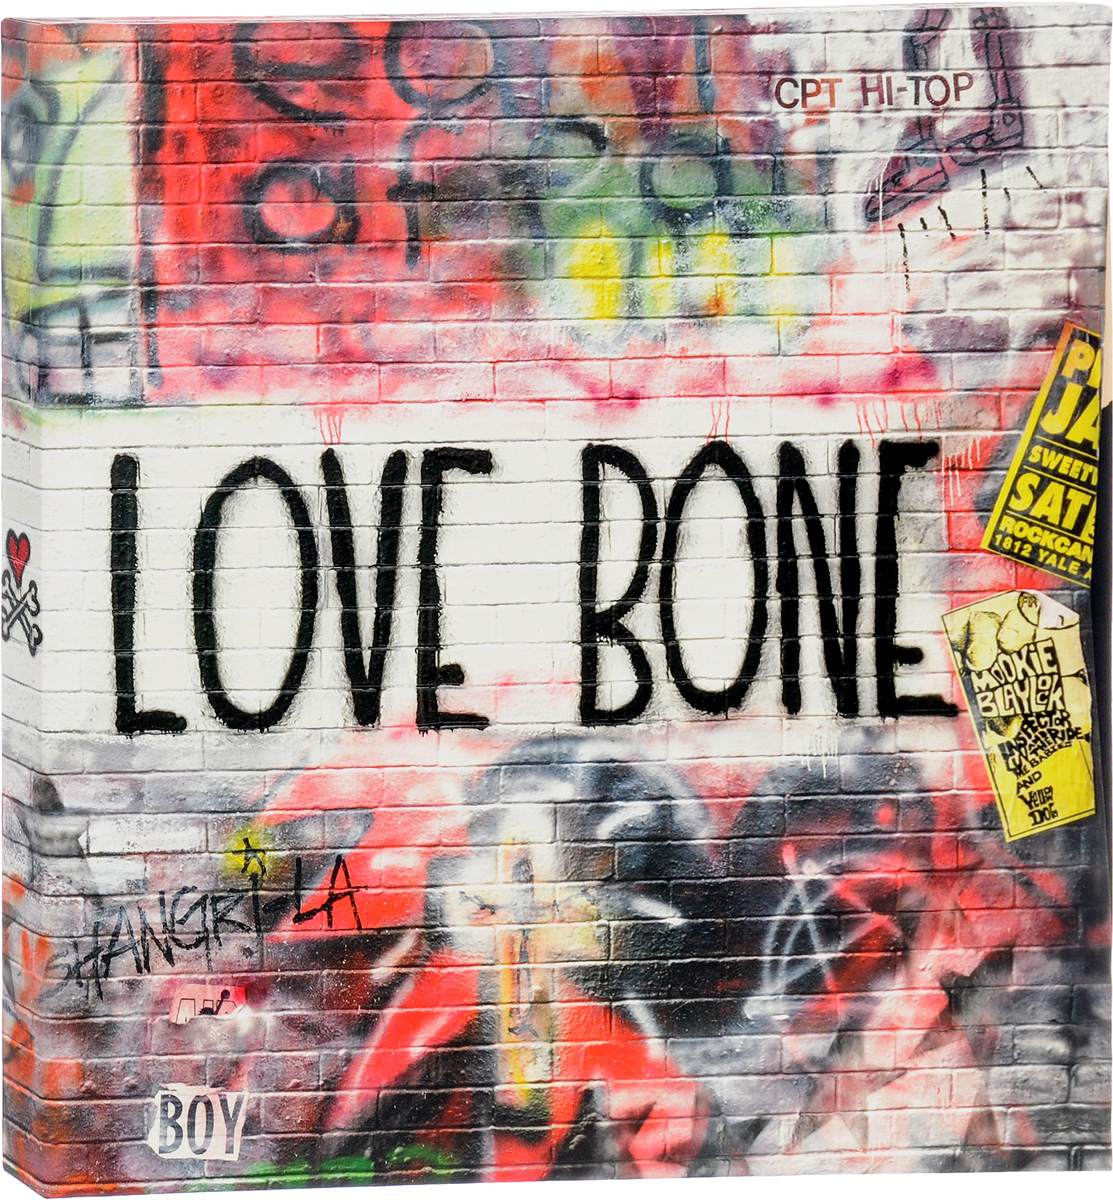 Mother Love Bone Mother Love Bone. On Earth As It Is. The Complete Works (3 LP) neje universal google virtual reality 3d glasses for 3 5 6 smartphones black